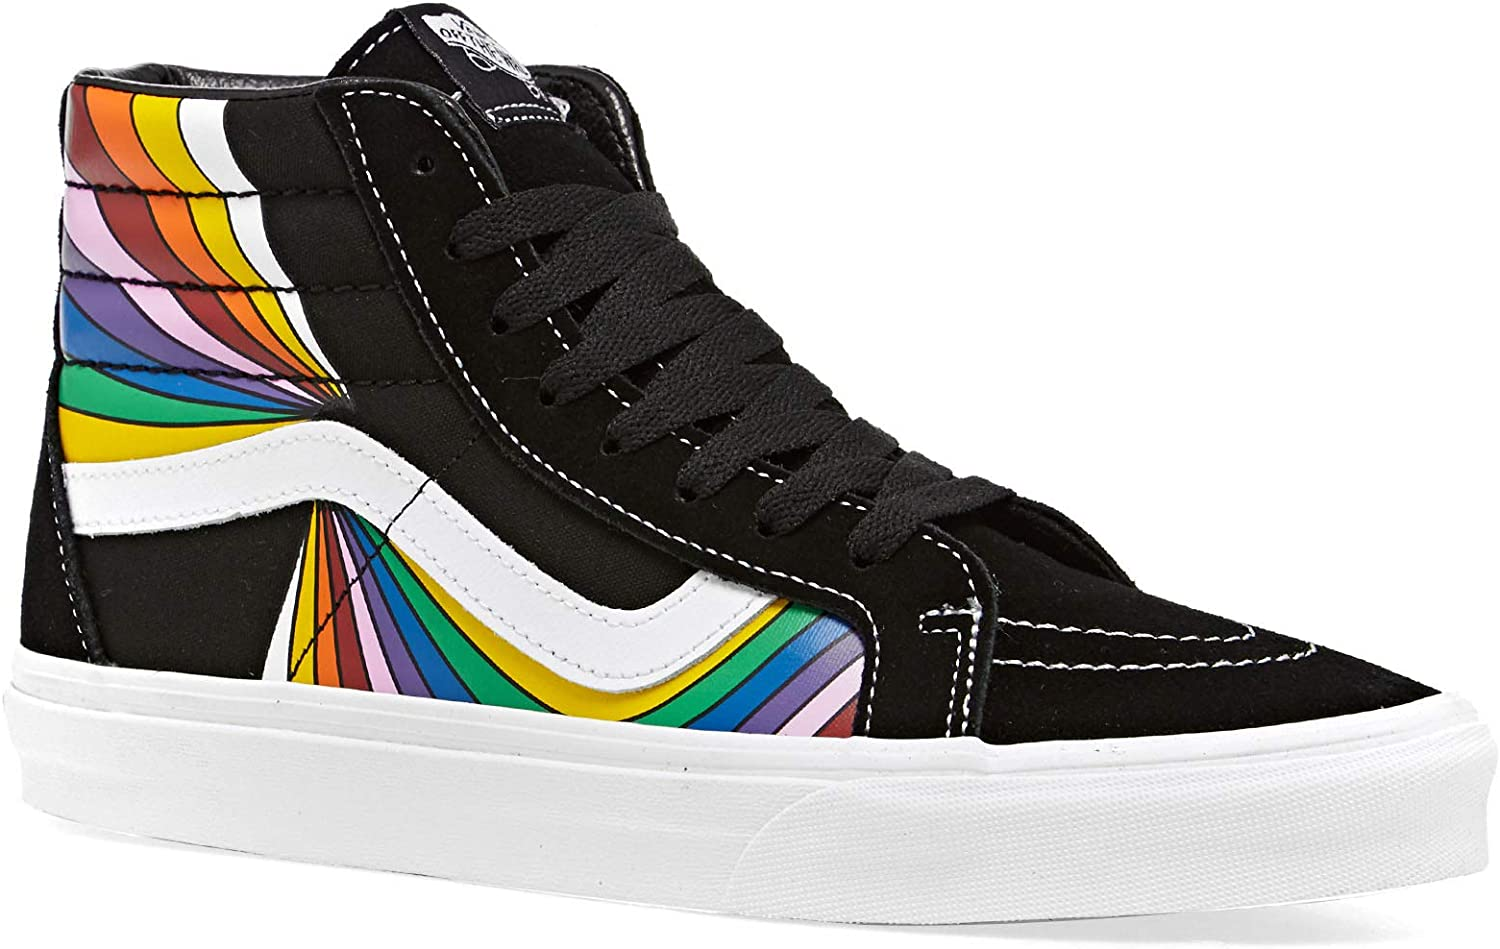 Vans Men's High-Top Trainers Black Multi Directly managed store Numeric_6 New Shipping Free Shipping True White